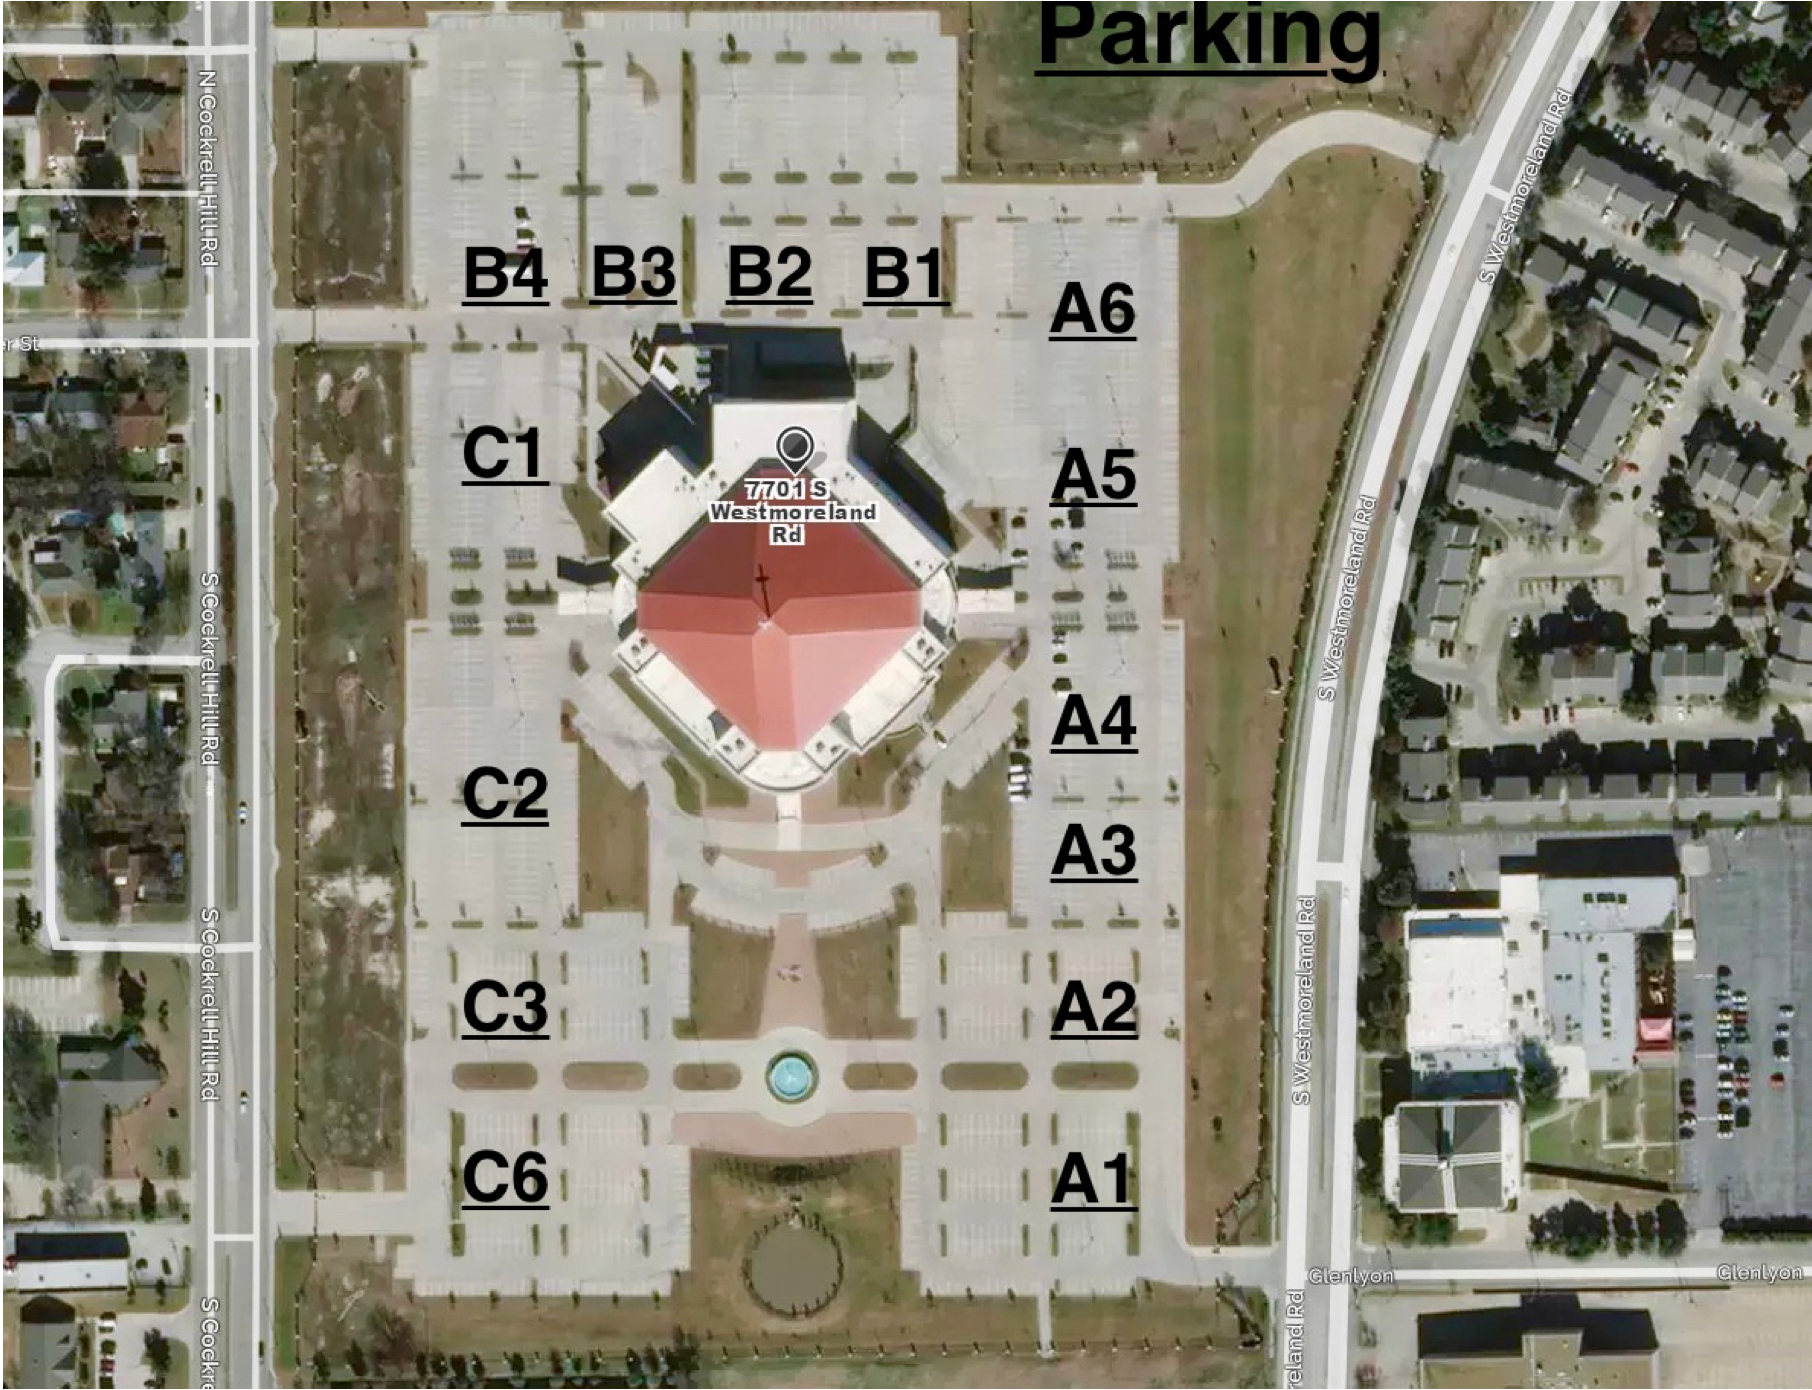 Parking Sections